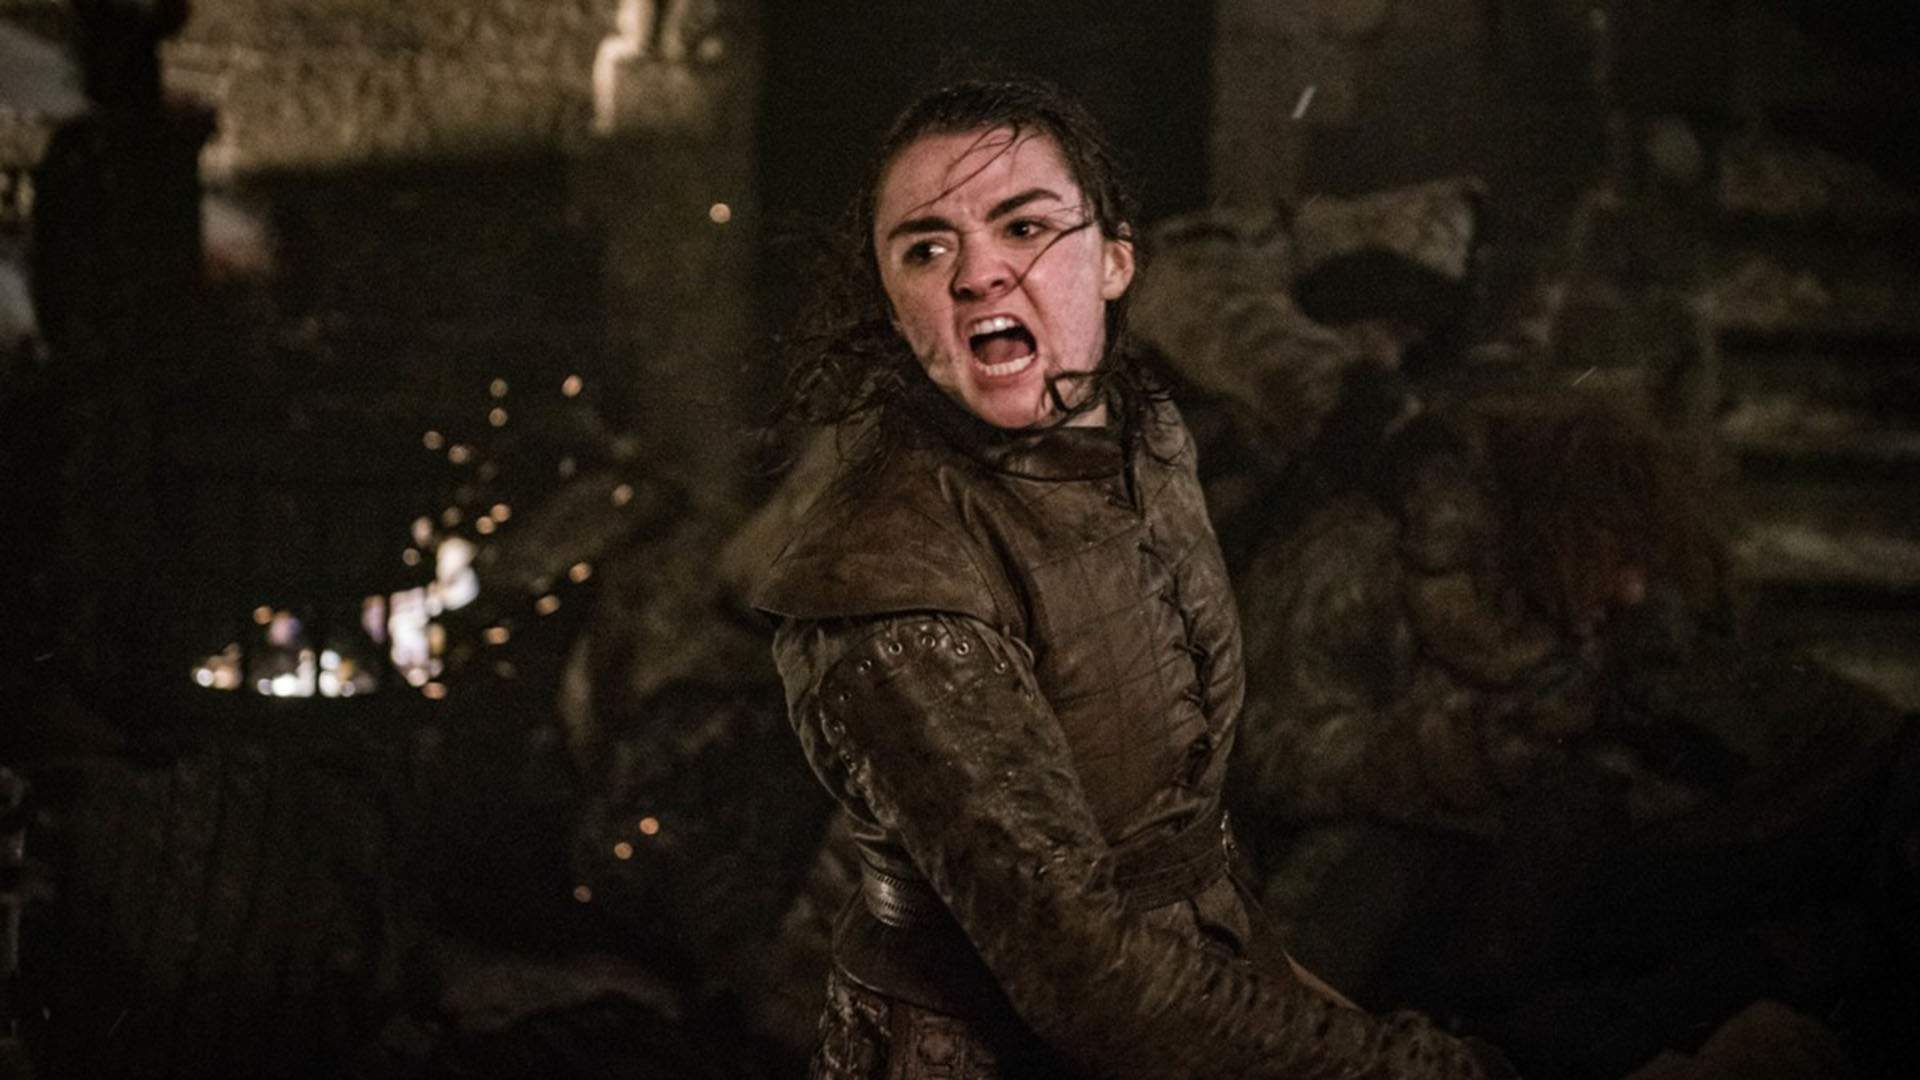 Nearly One Million Unhappy 'Game of Thrones' Fans Want the Show's Final Season to Be Remade